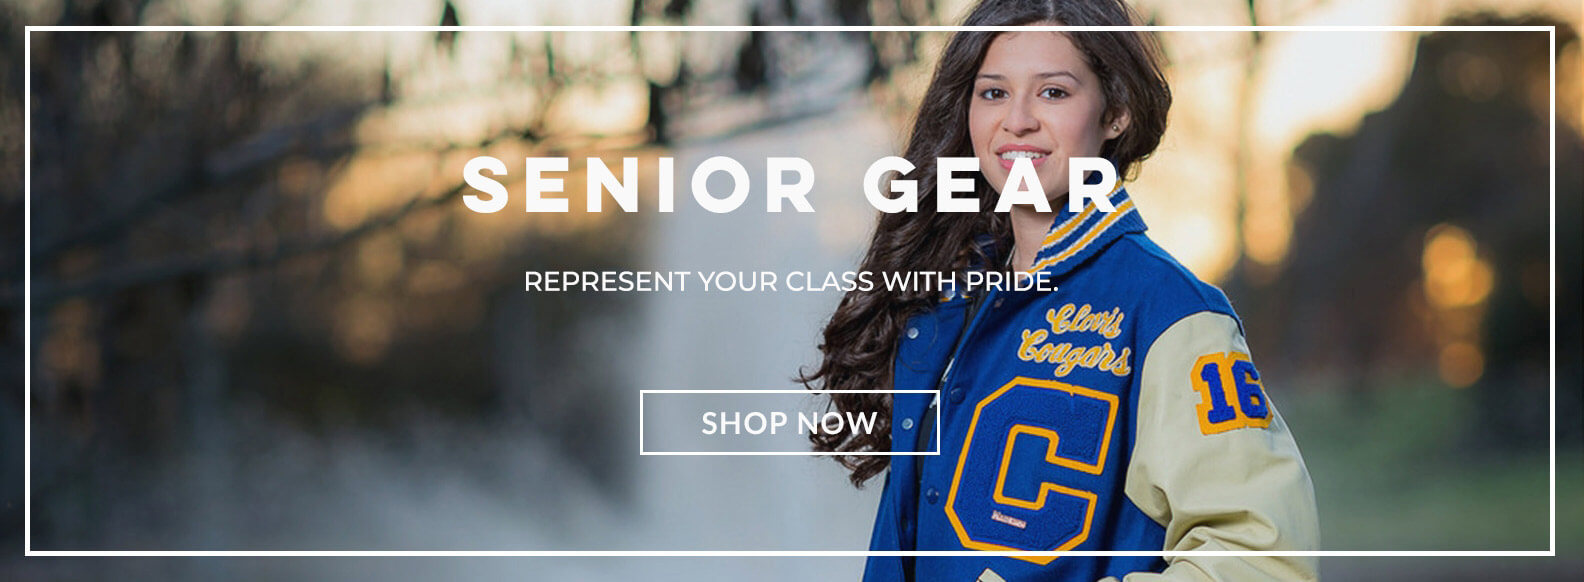 Senior Grear Banner page title